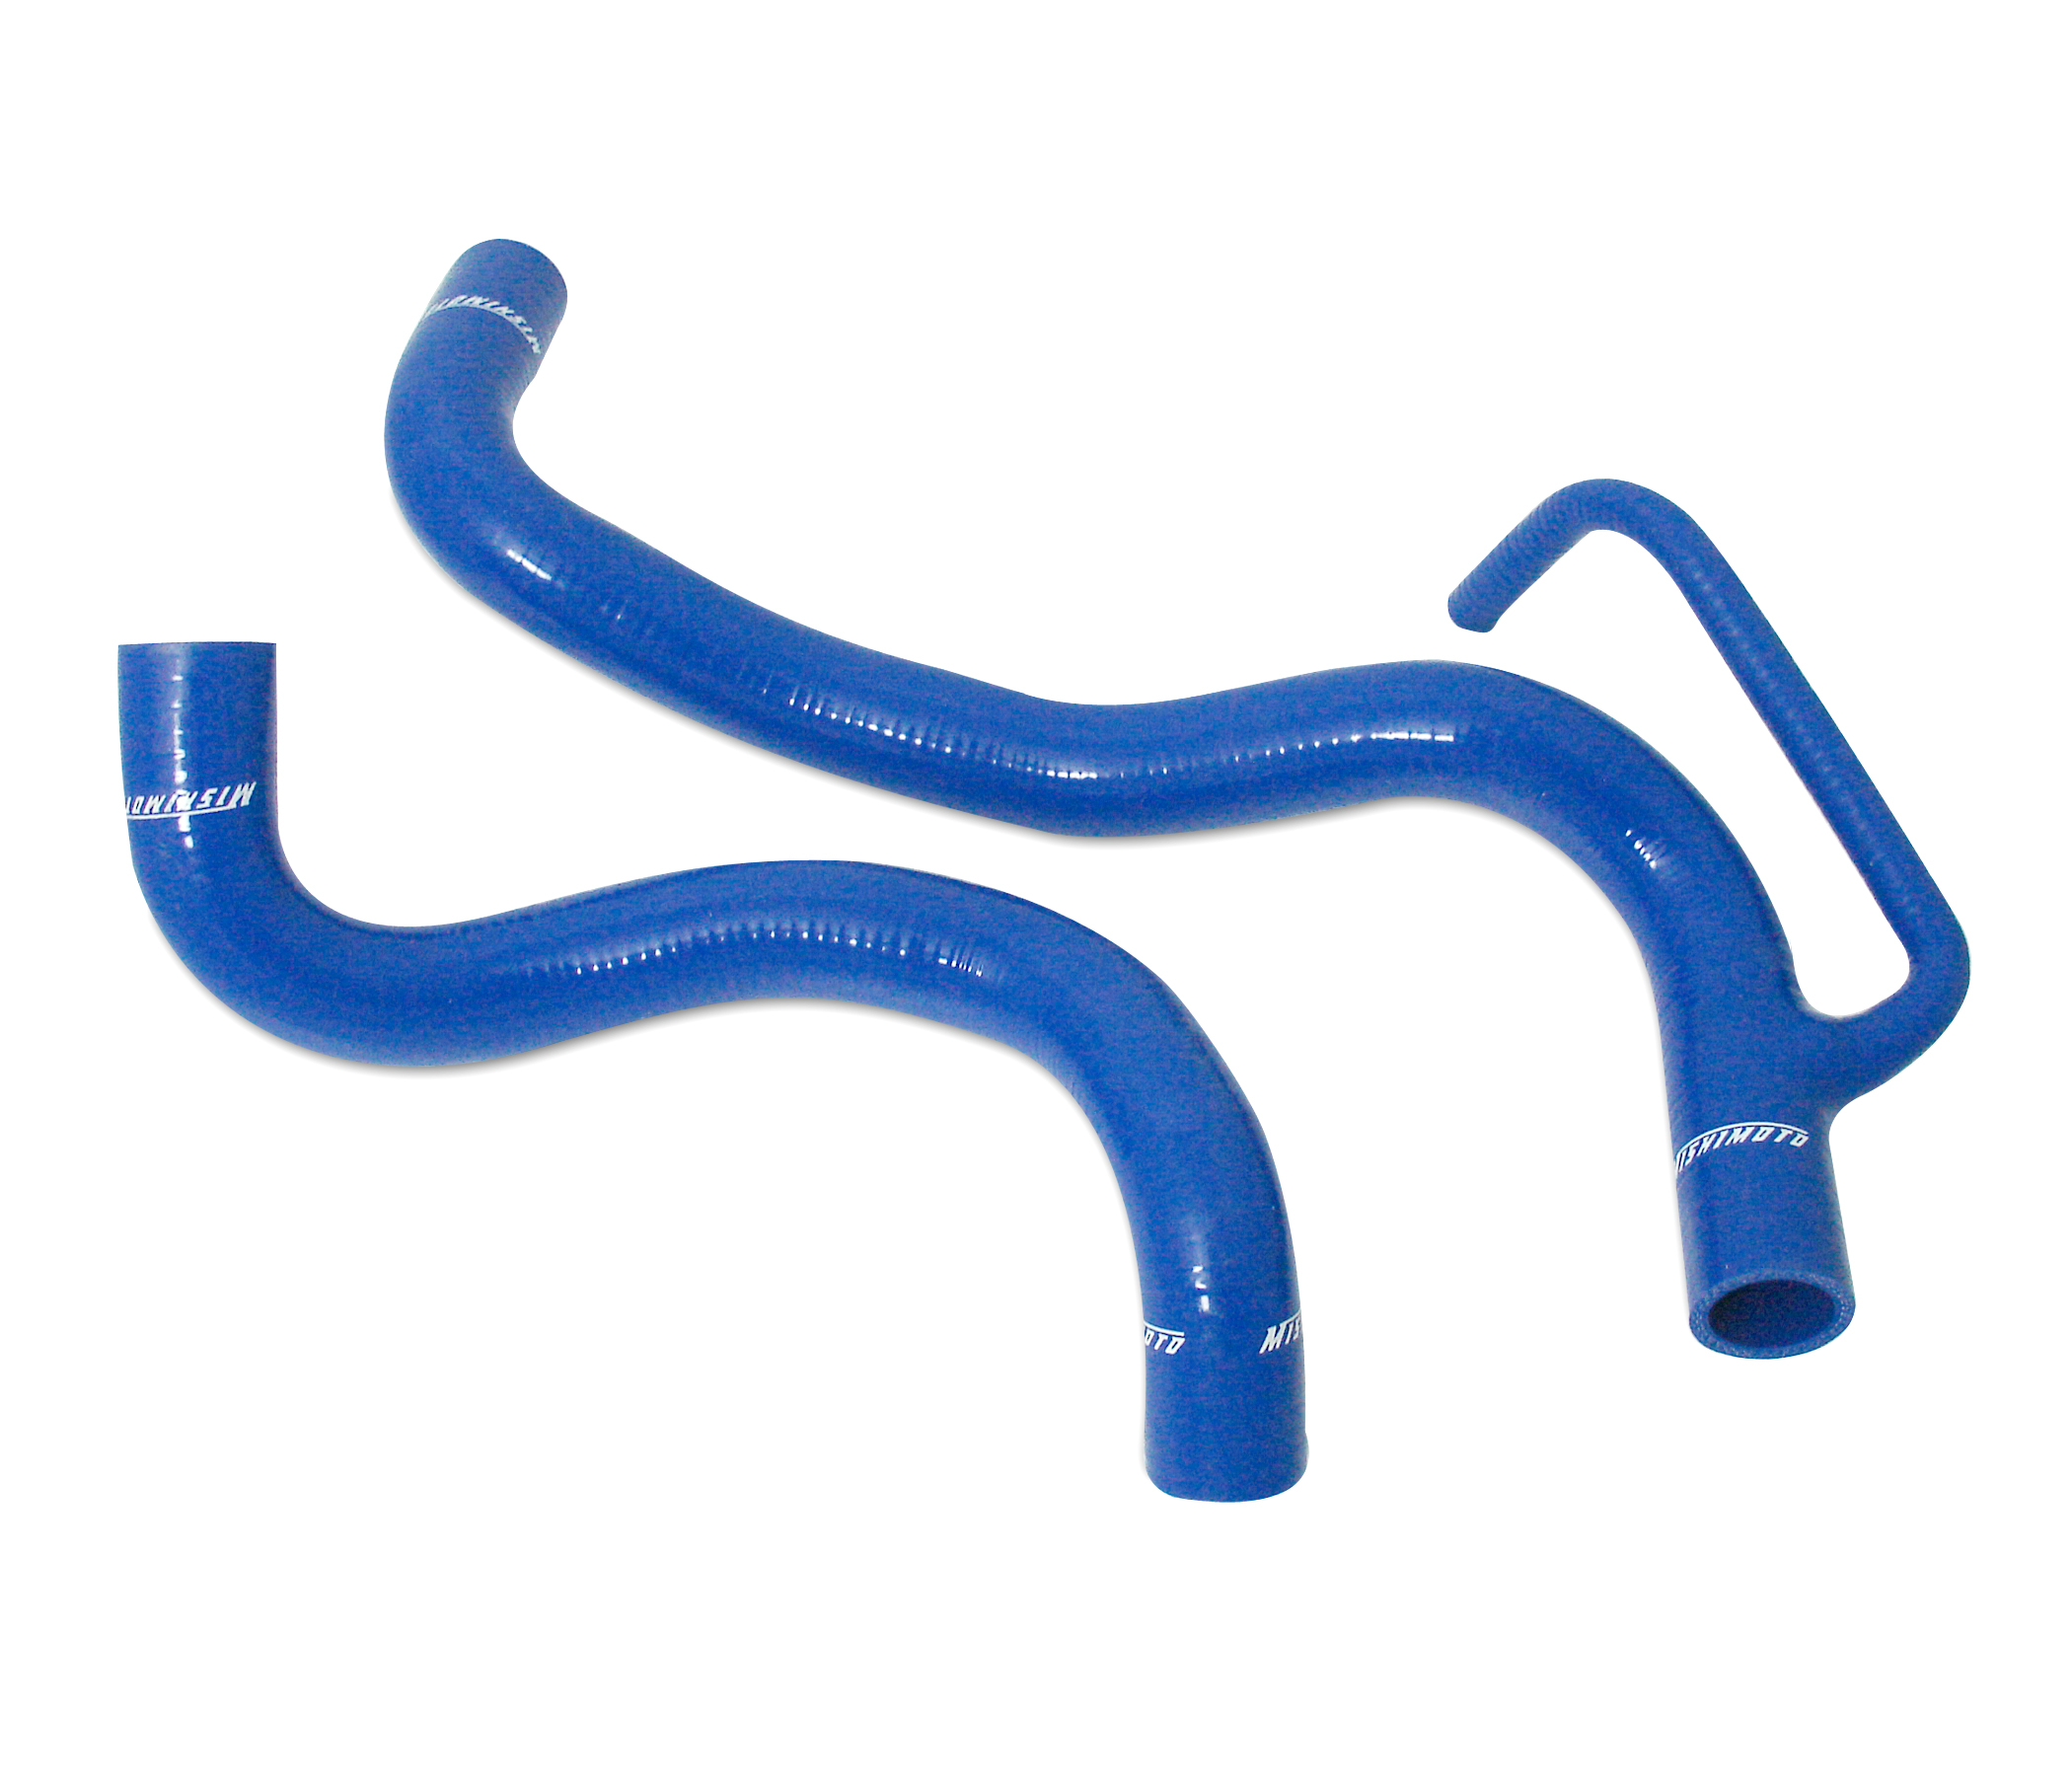 Scion XB  2008-2012 Mishimoto Silicone Radiator Hose Kit - Blue